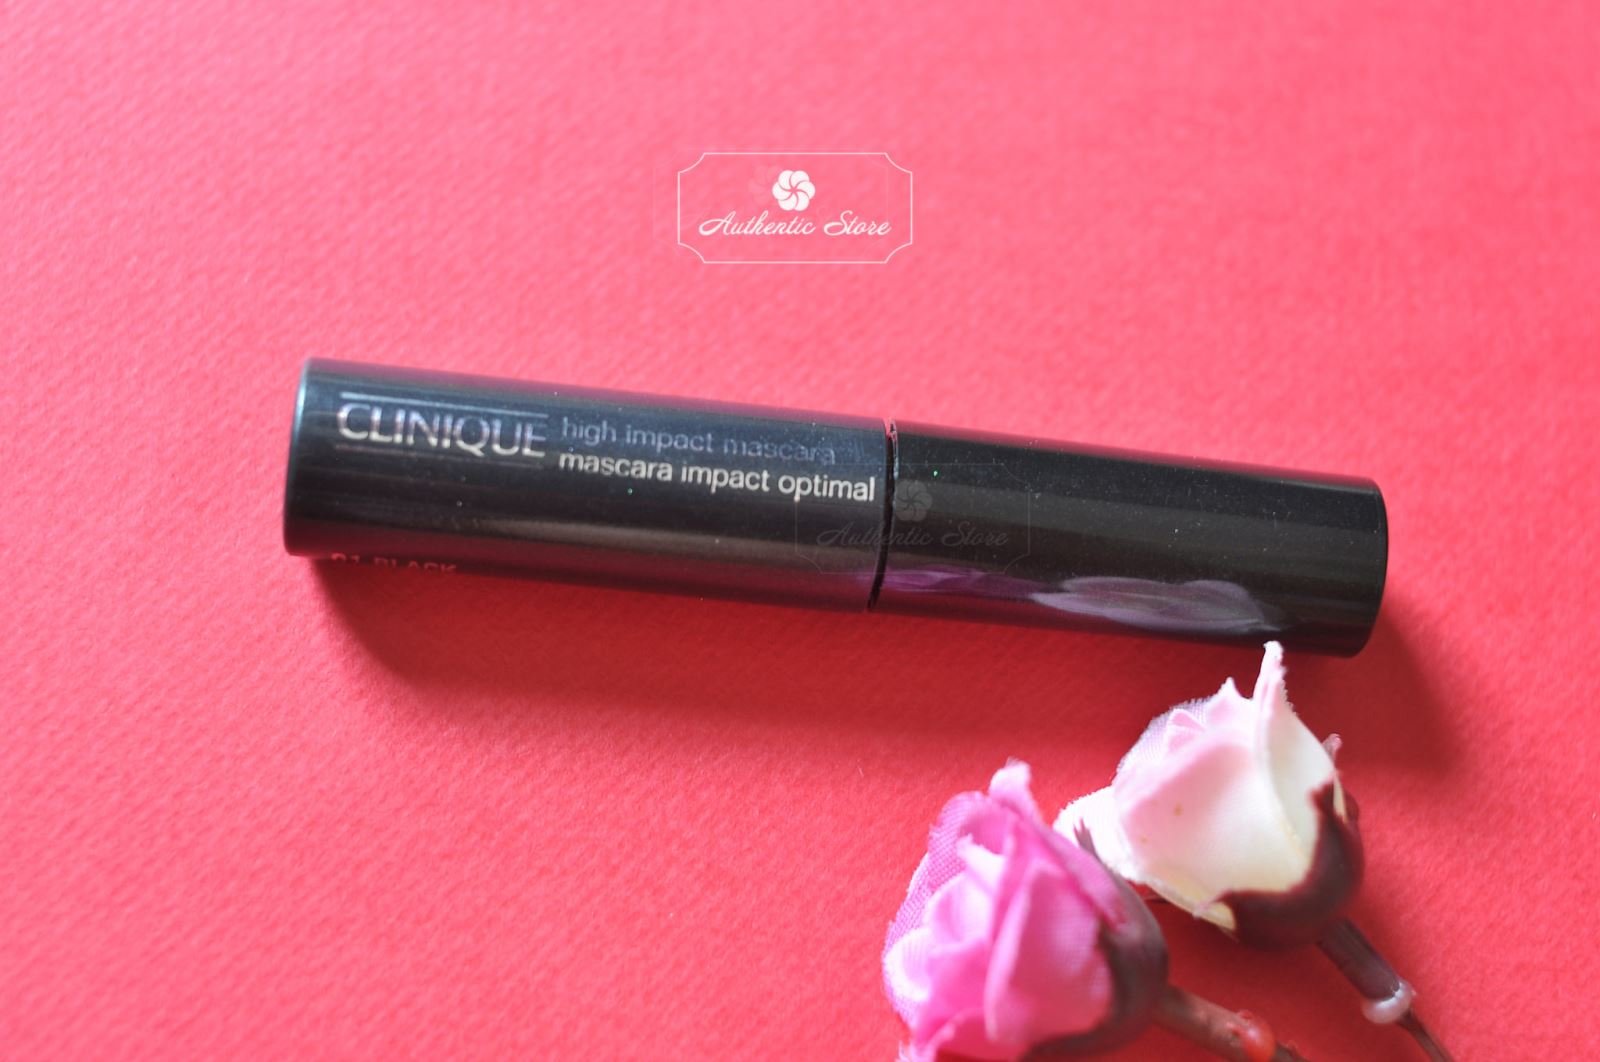 Mascara Clinique high impact